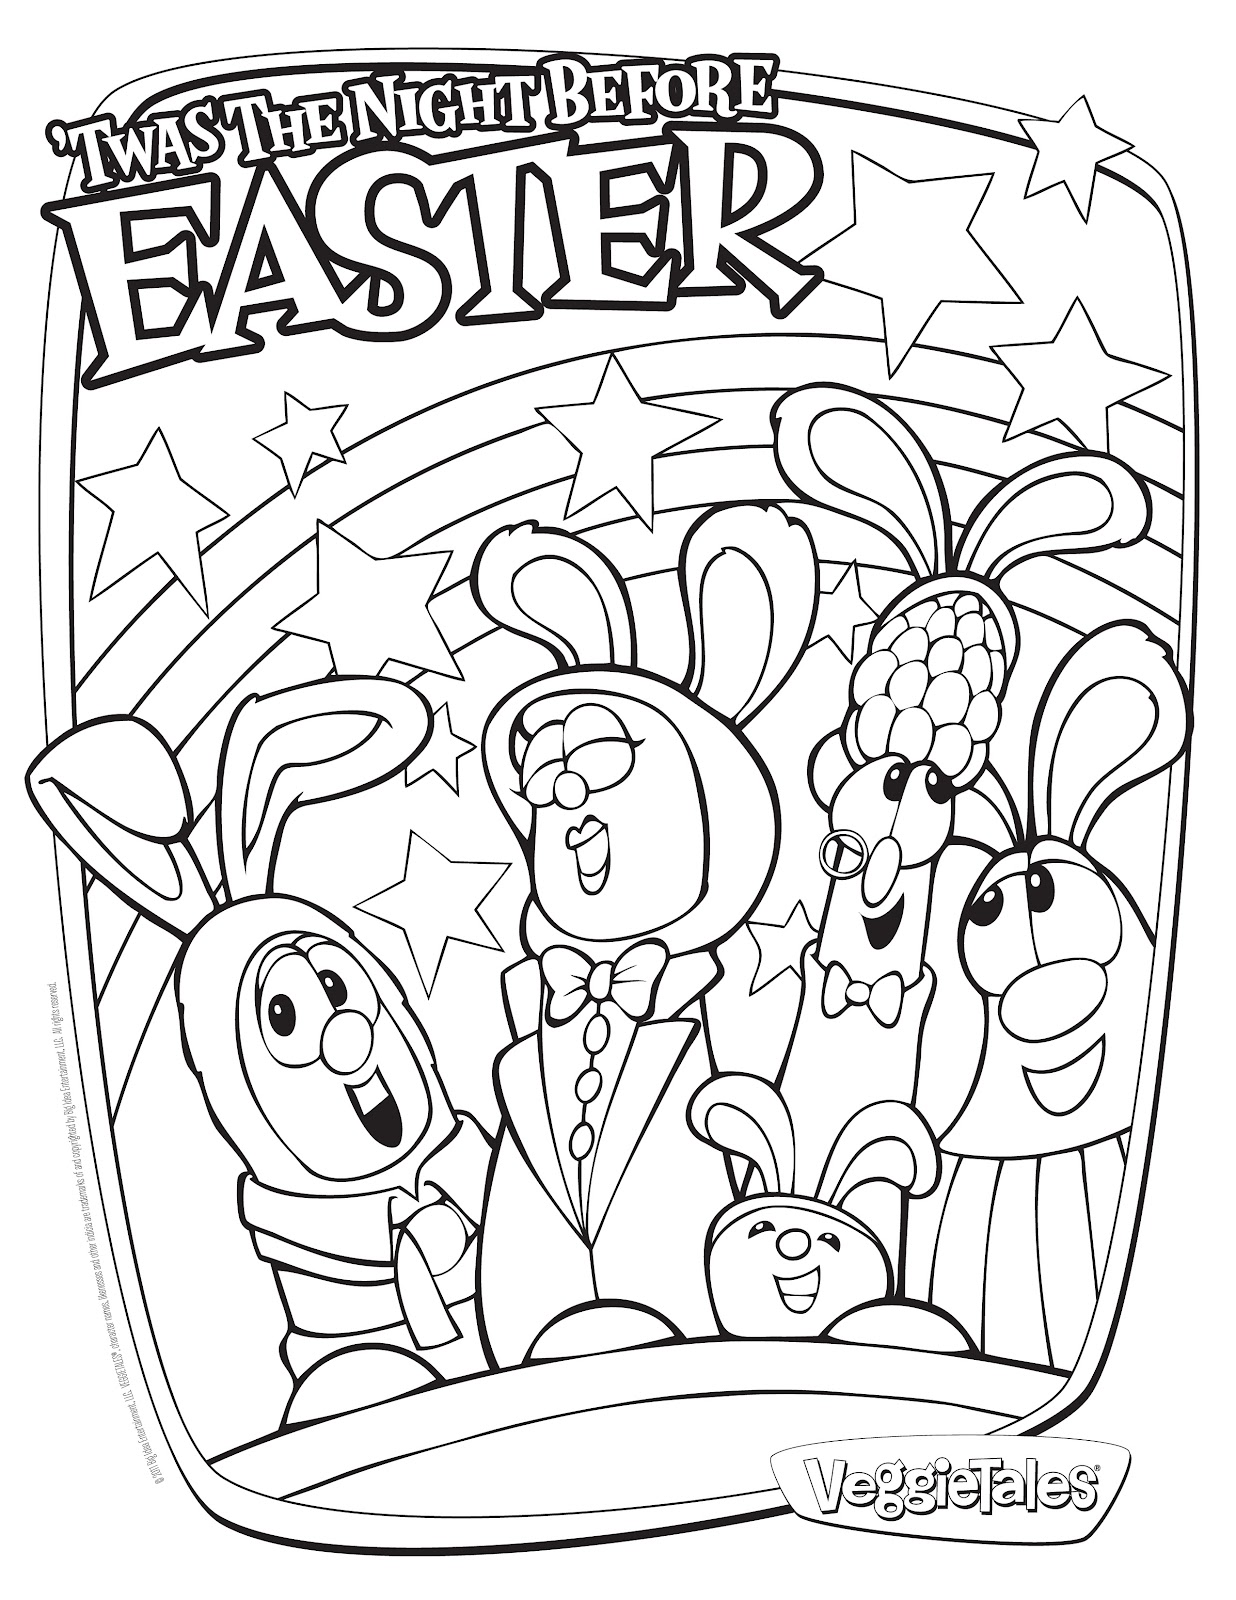 free coloring pages easter christian - photo#25